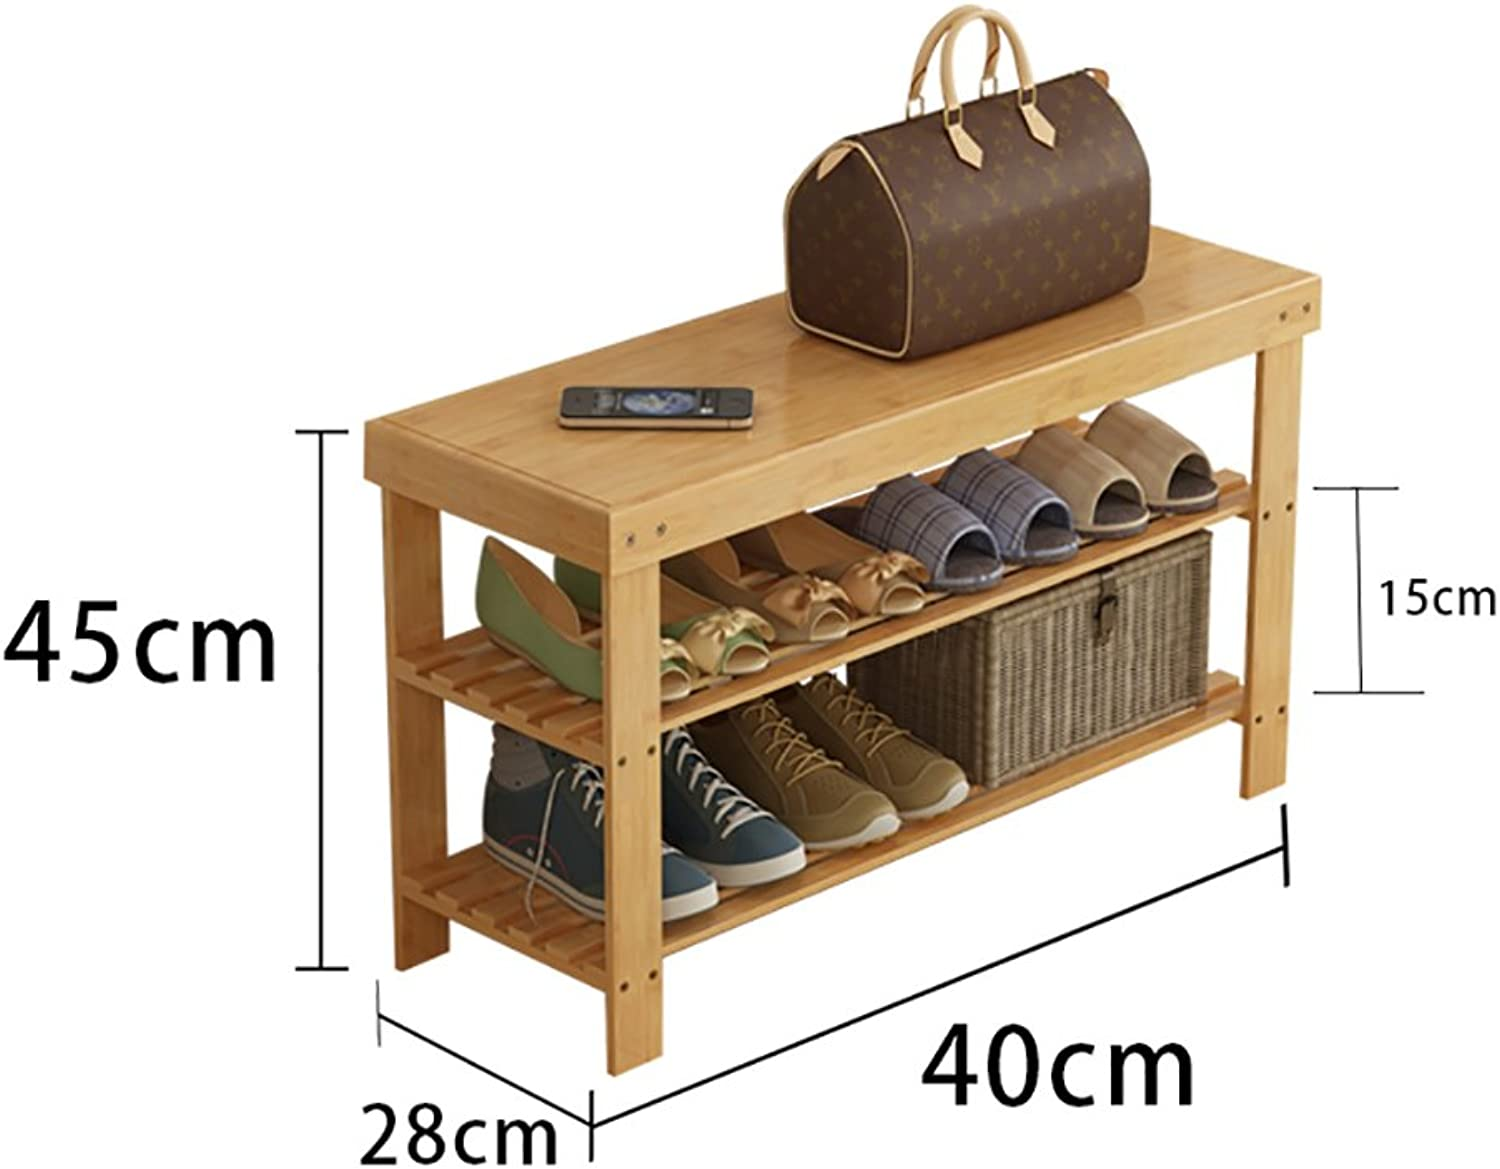 shoes Bench Organizing Rack Simple shoes Shelf Multilayer Dustproof Solid Wood Bamboo Storage Economy Home Dormitory Dormitory Assembly Living Room shoes Cabinet